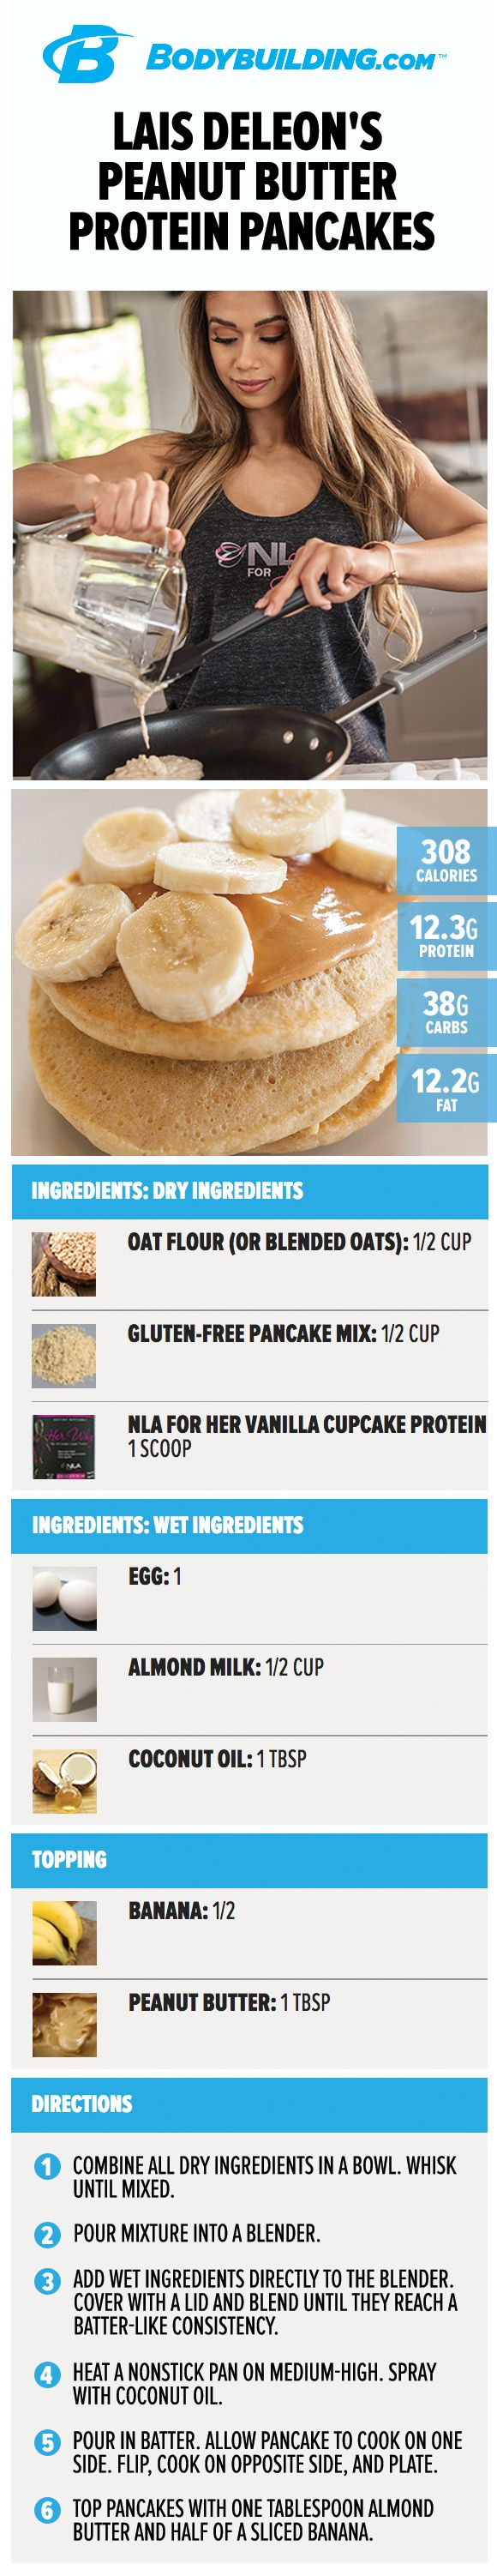 Lais DeLeon's Peanut Butter Protein Pancakes. Looking to add a protein punch to your morning meal? Try out these flapjacks, which combine the dual superpowers of protein and peanut butter into one glorious pancake experience!